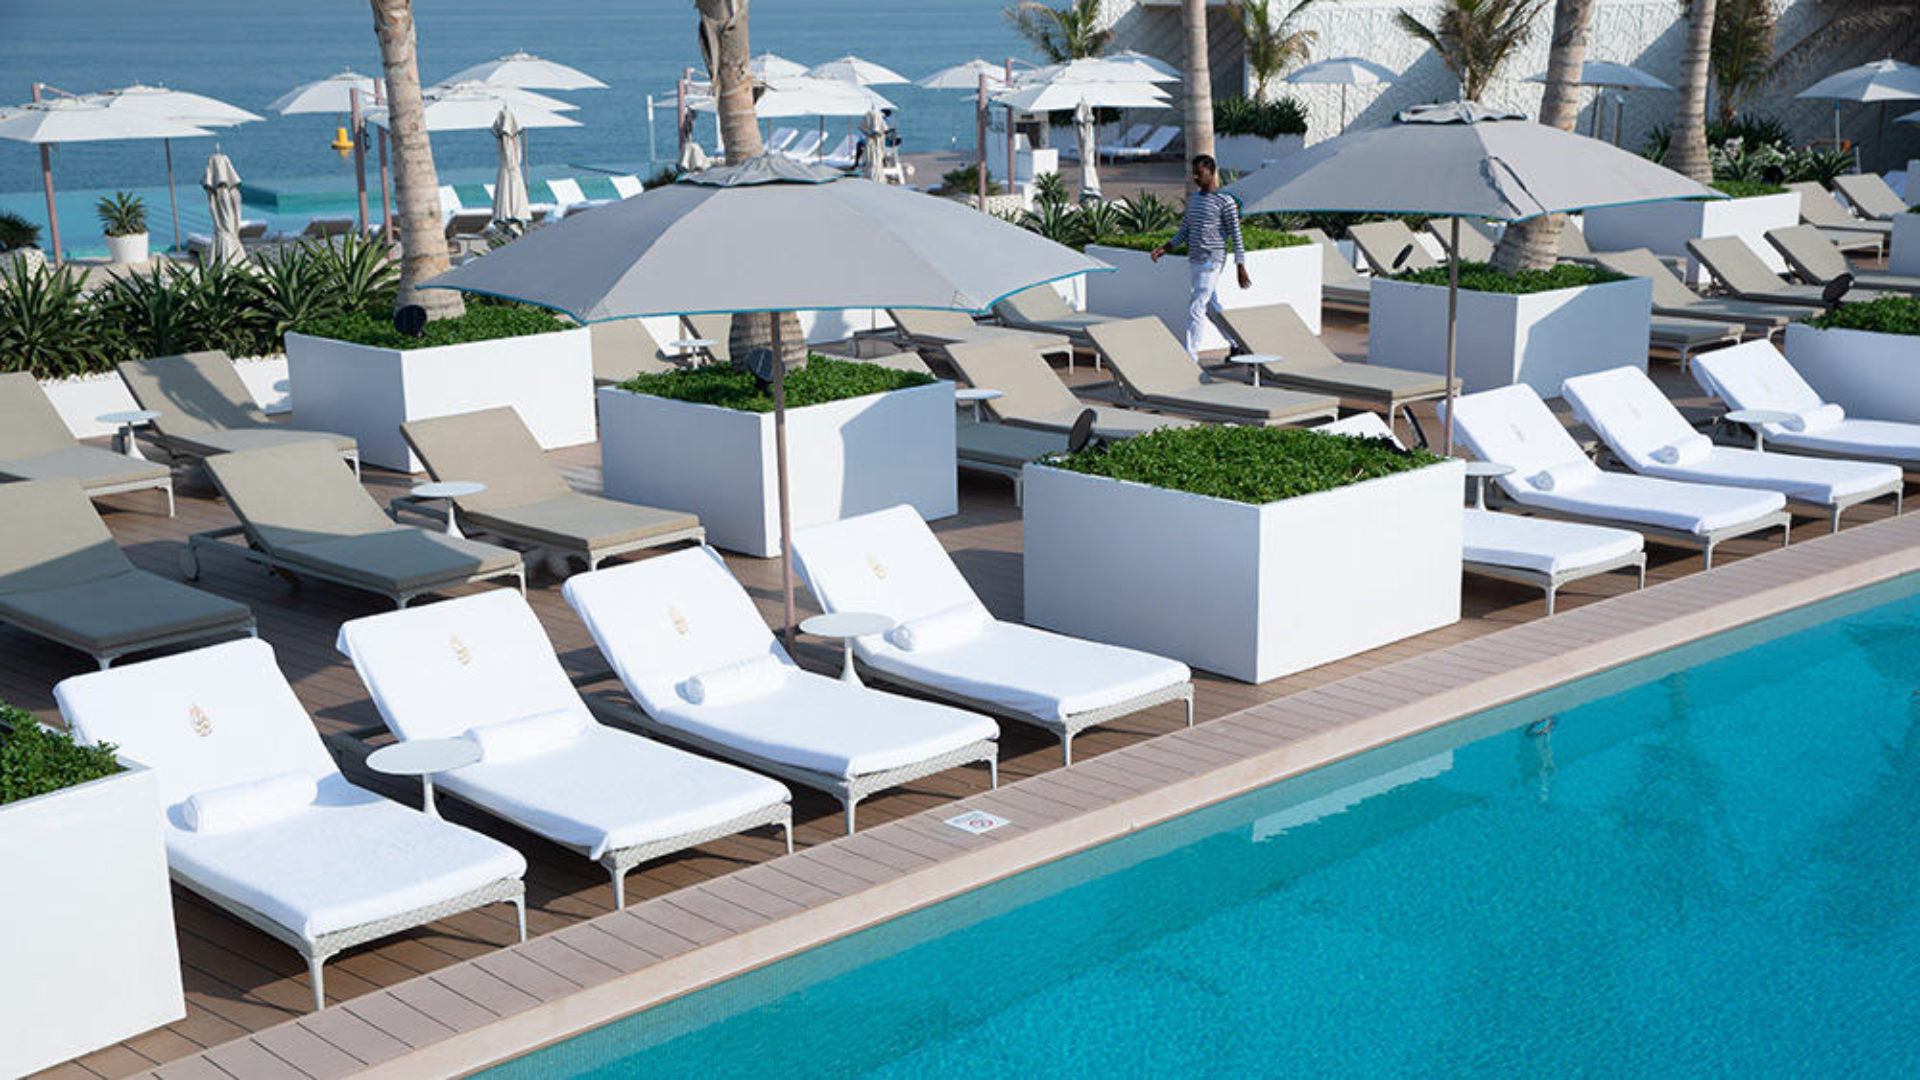 Sunloungers at the pool at the Burj Al Arab